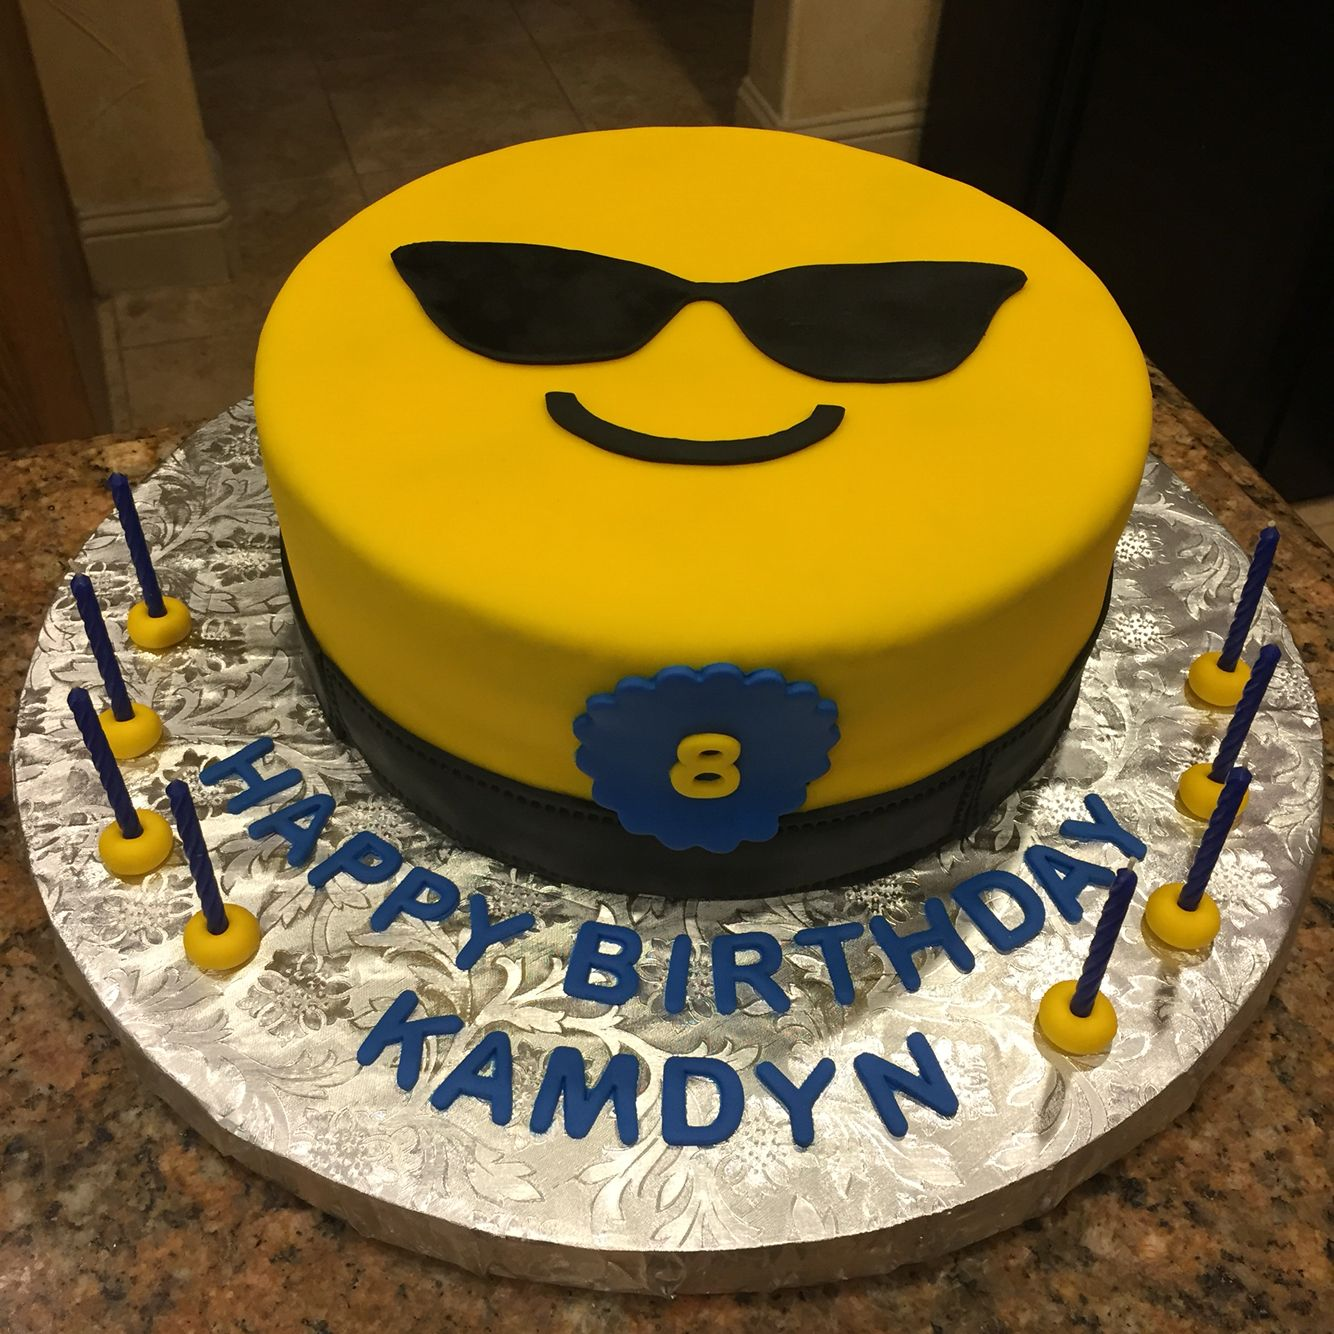 Images Of Birthday Cake Emoji : Sunglasses emoji cake! Emoji birthday cake! My Cakes ...